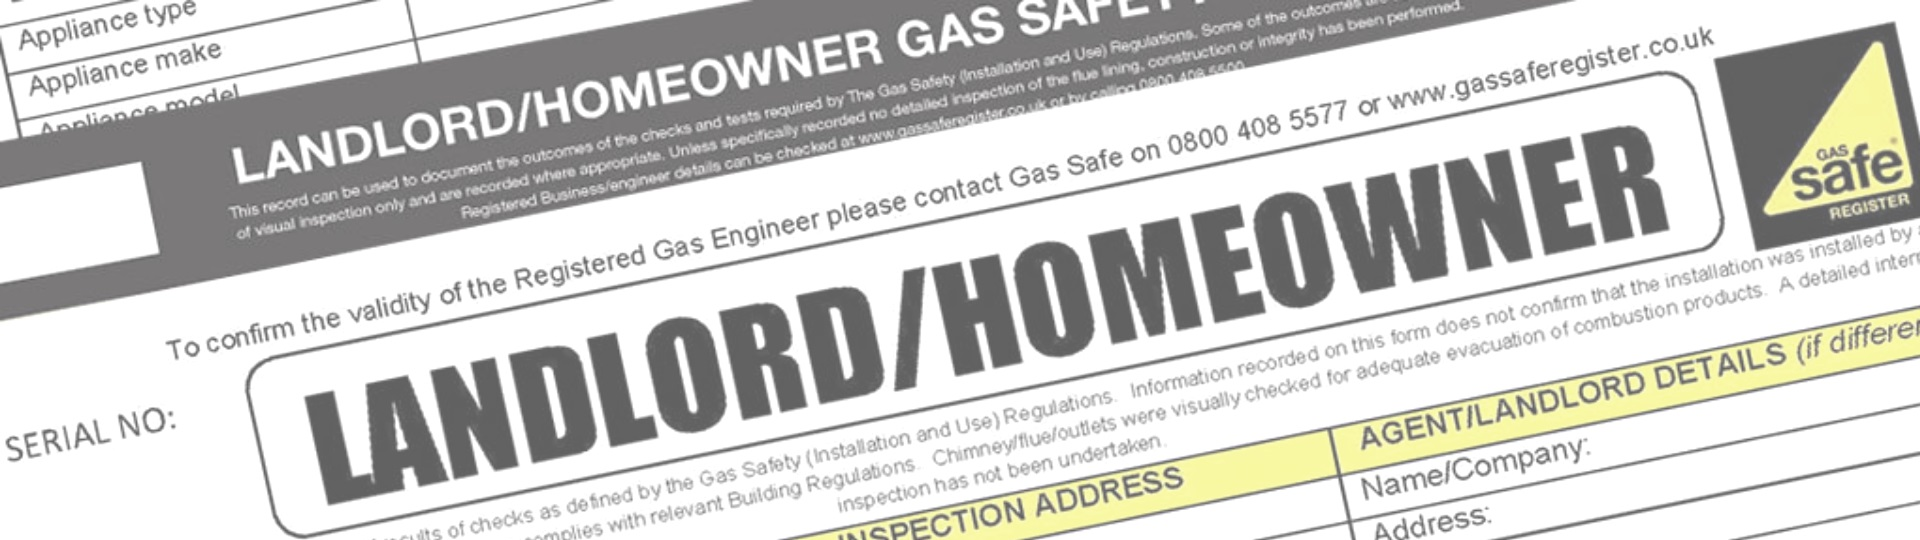 Gas Saftey Certificates Spike Island